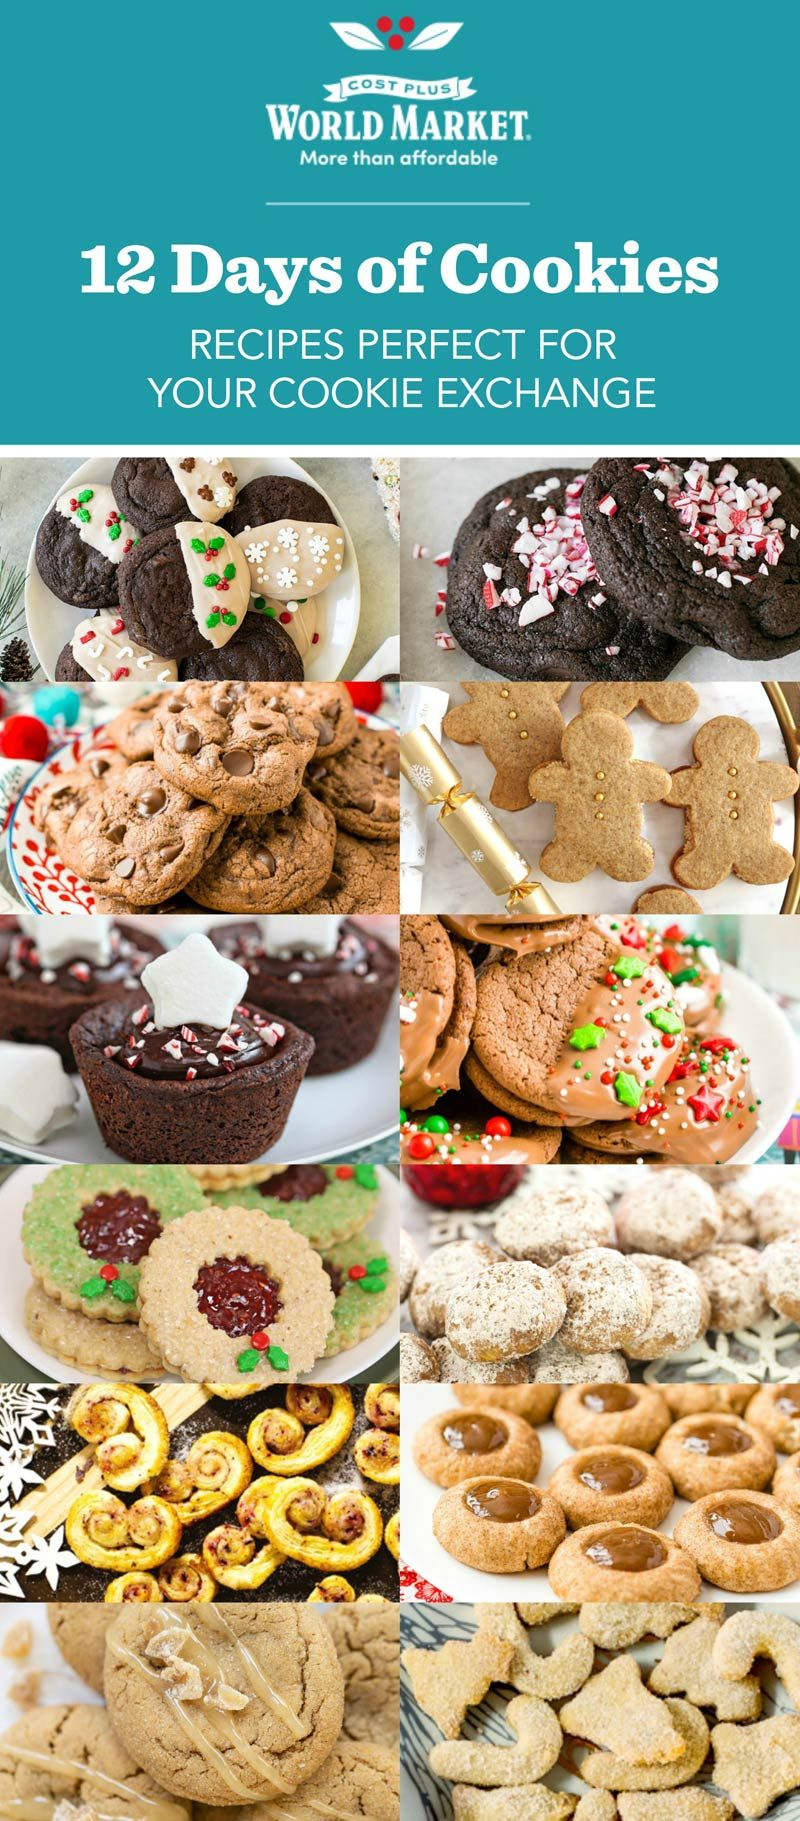 12 Days Of Christmas Cost 2019 Cost Plus World Market 12 Days of Cookies  Tis the season for